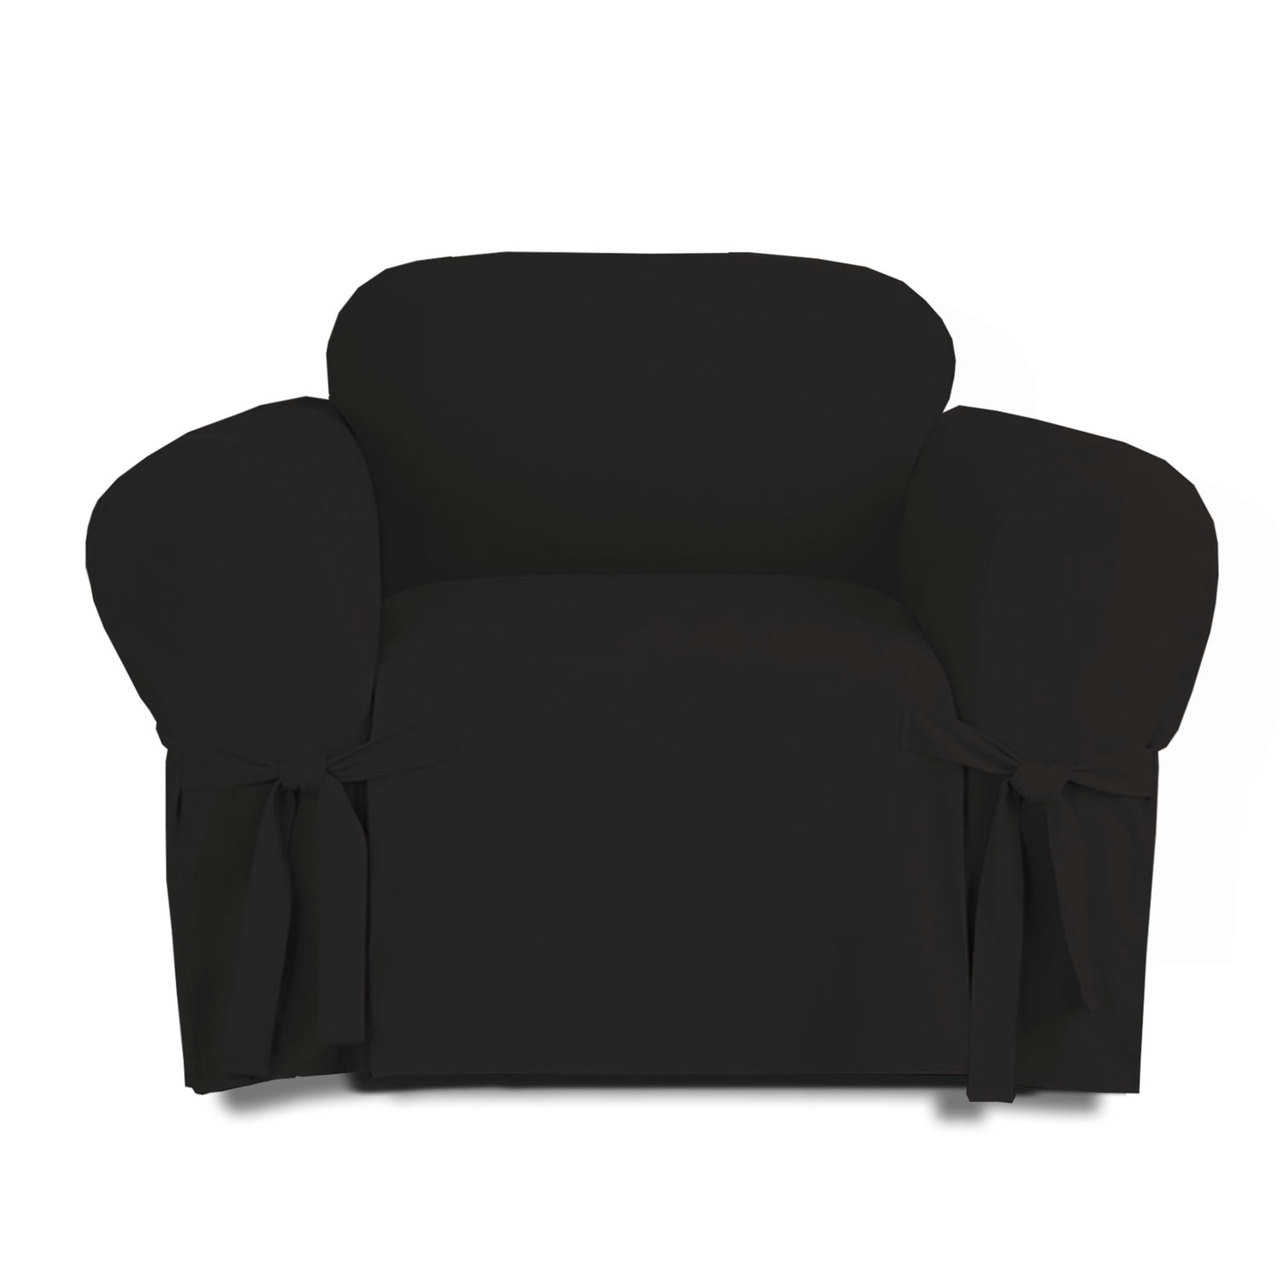 black furniture covers. Linen Store Microsuede Slipcover, Furniture Protector Cover Chair Black Black Furniture Covers C